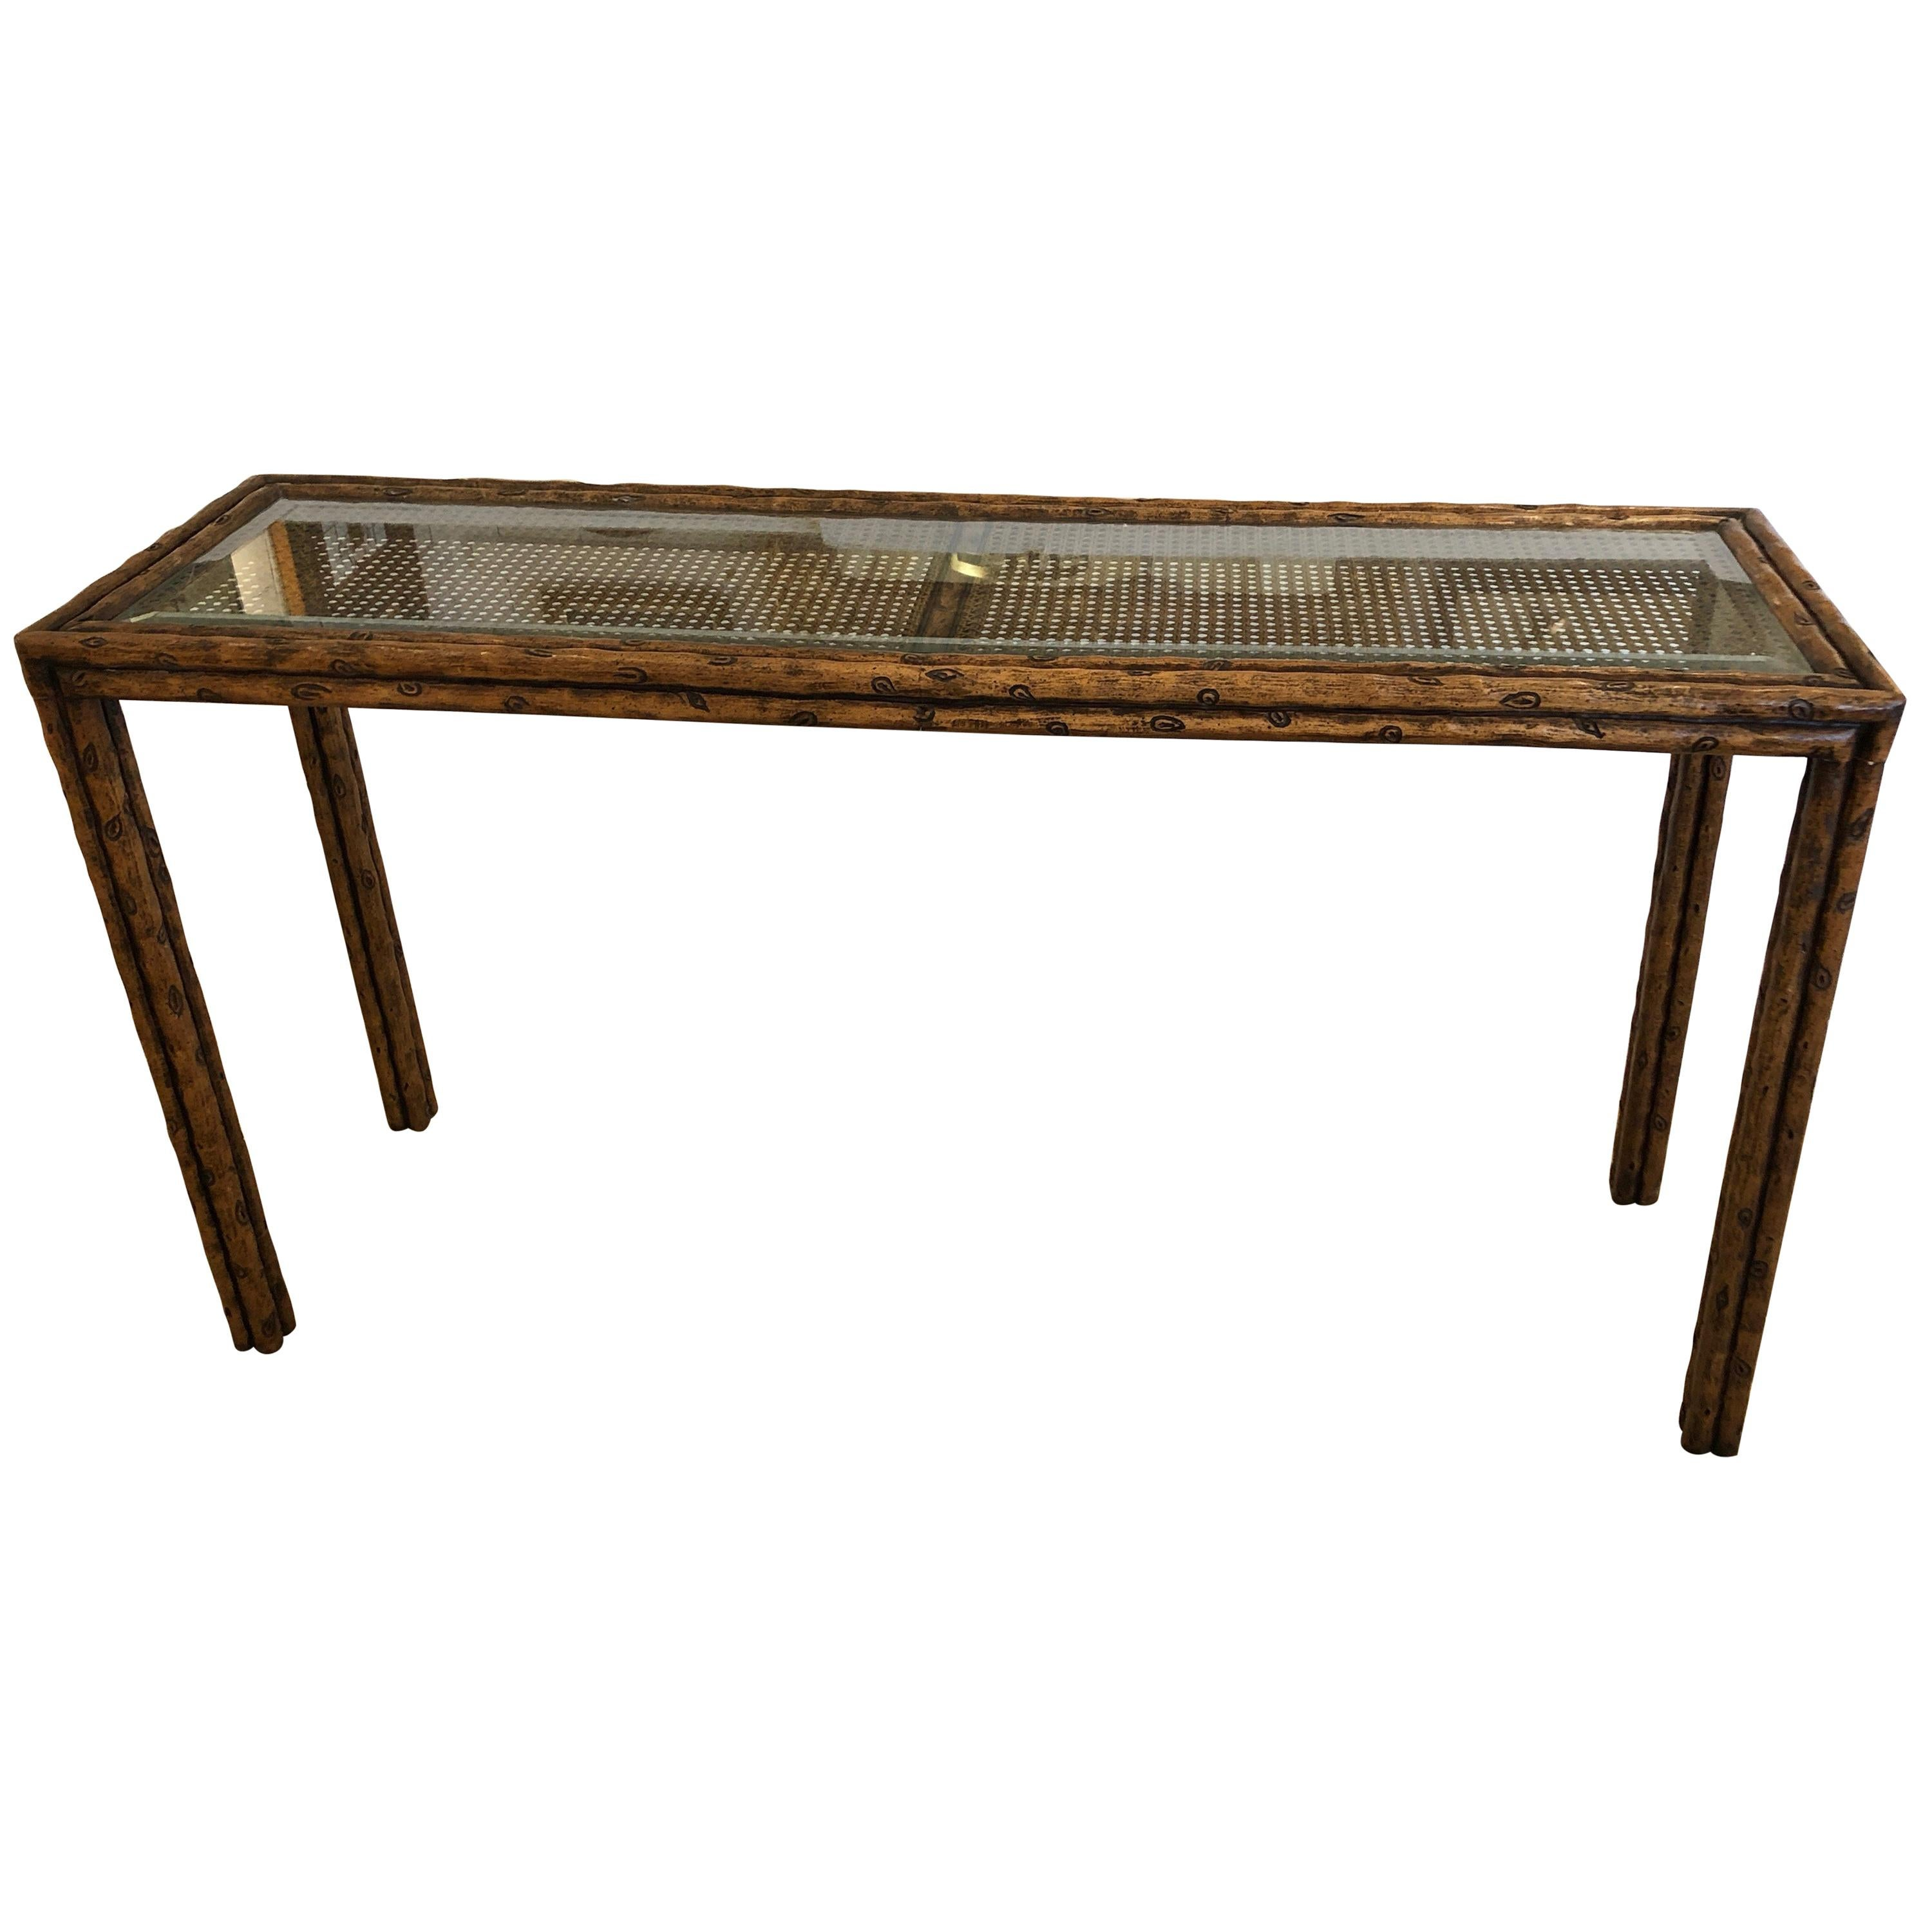 Charmant Handsome Mid Century Modern Faux Bois And Caned Console Table